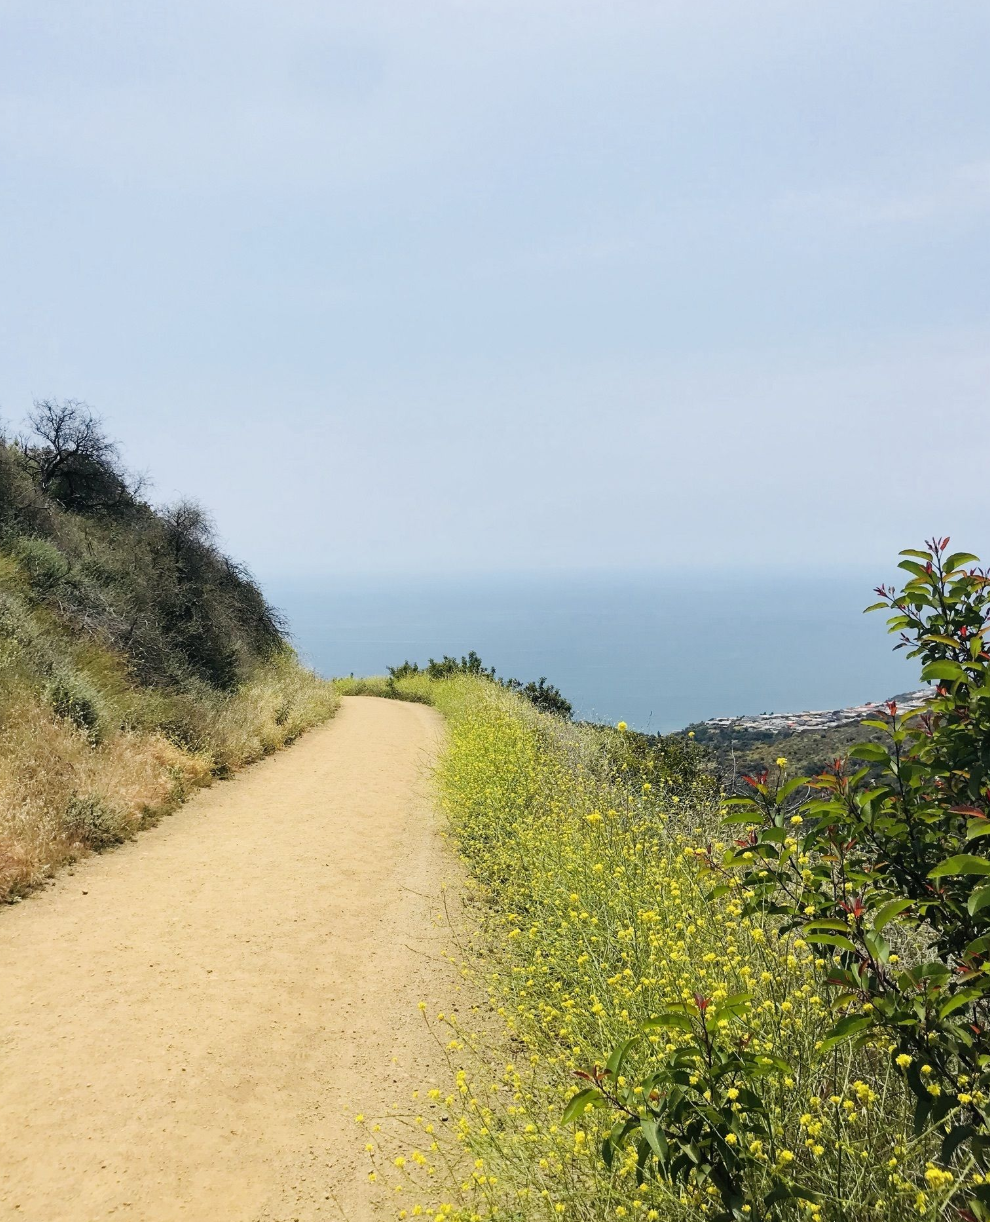 PEAK: Los Liones - DIFFICULTY: 2/5 (4.5 miles, 1200 feet of elevation gain)SCENERY: sun, wildflowers, coastline, more sunFUN FACT: You can see mountains, the beach, and the city all at once on this hike!